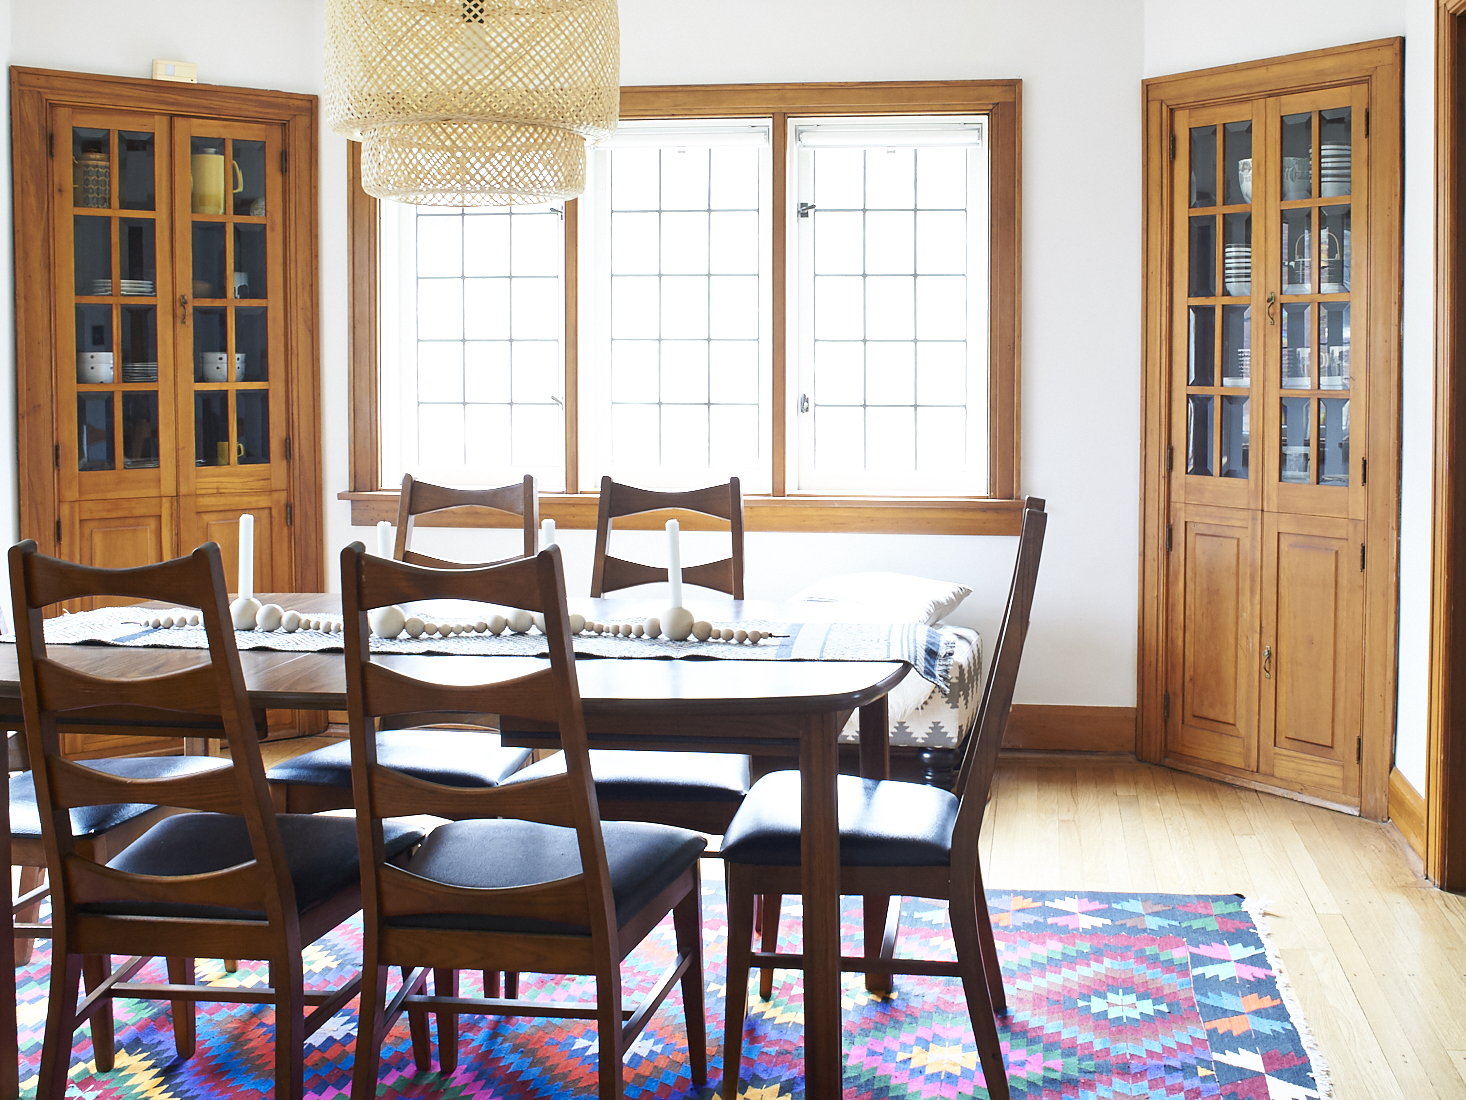 The Dining Room | The Sweet Beast Blog